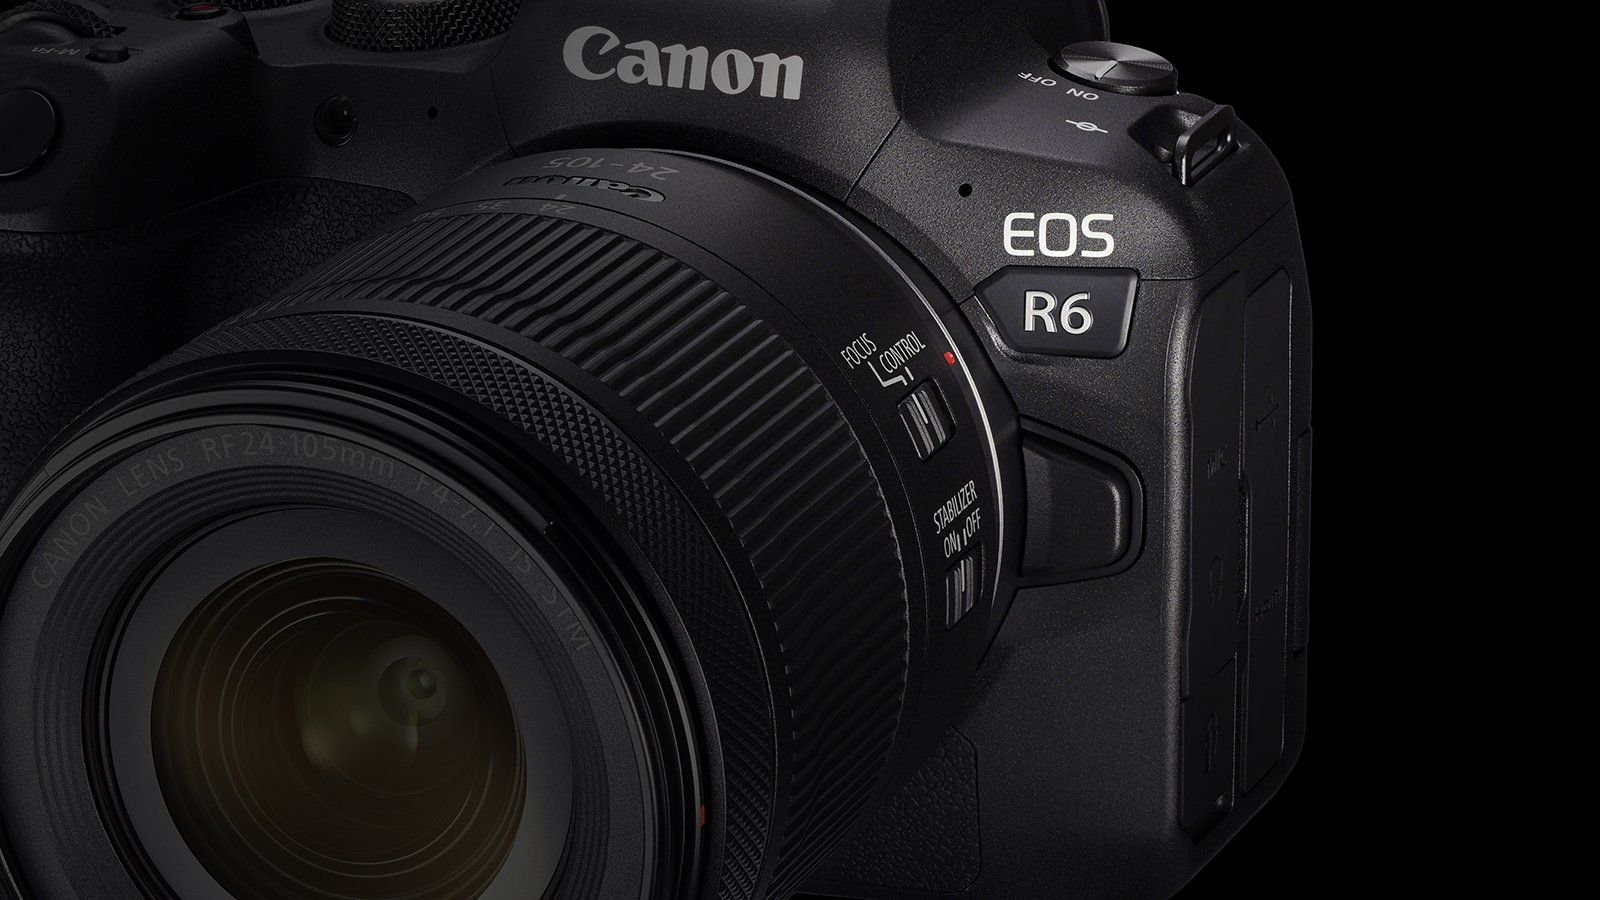 THE NEW EOS R6